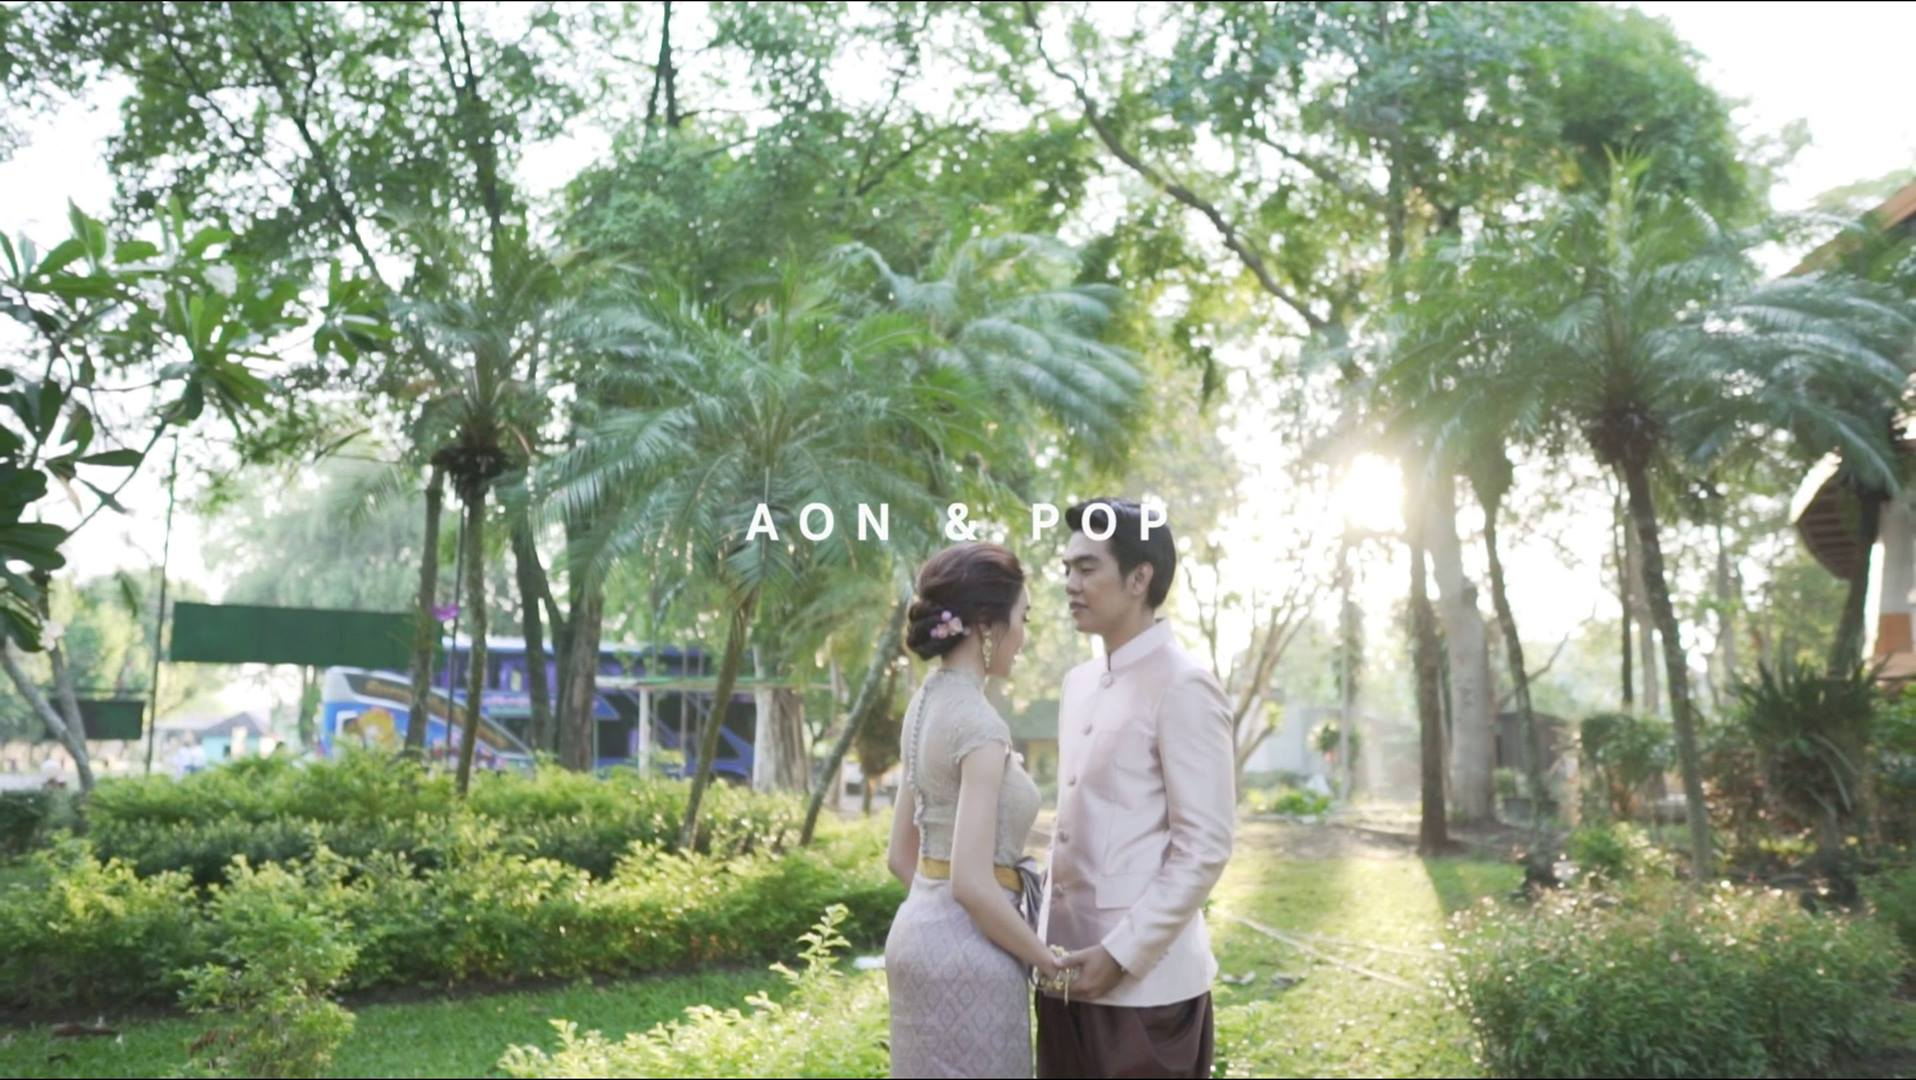 AON & POP WEDDING's Engagement CINEMATOGRAPHY (Same day edit)